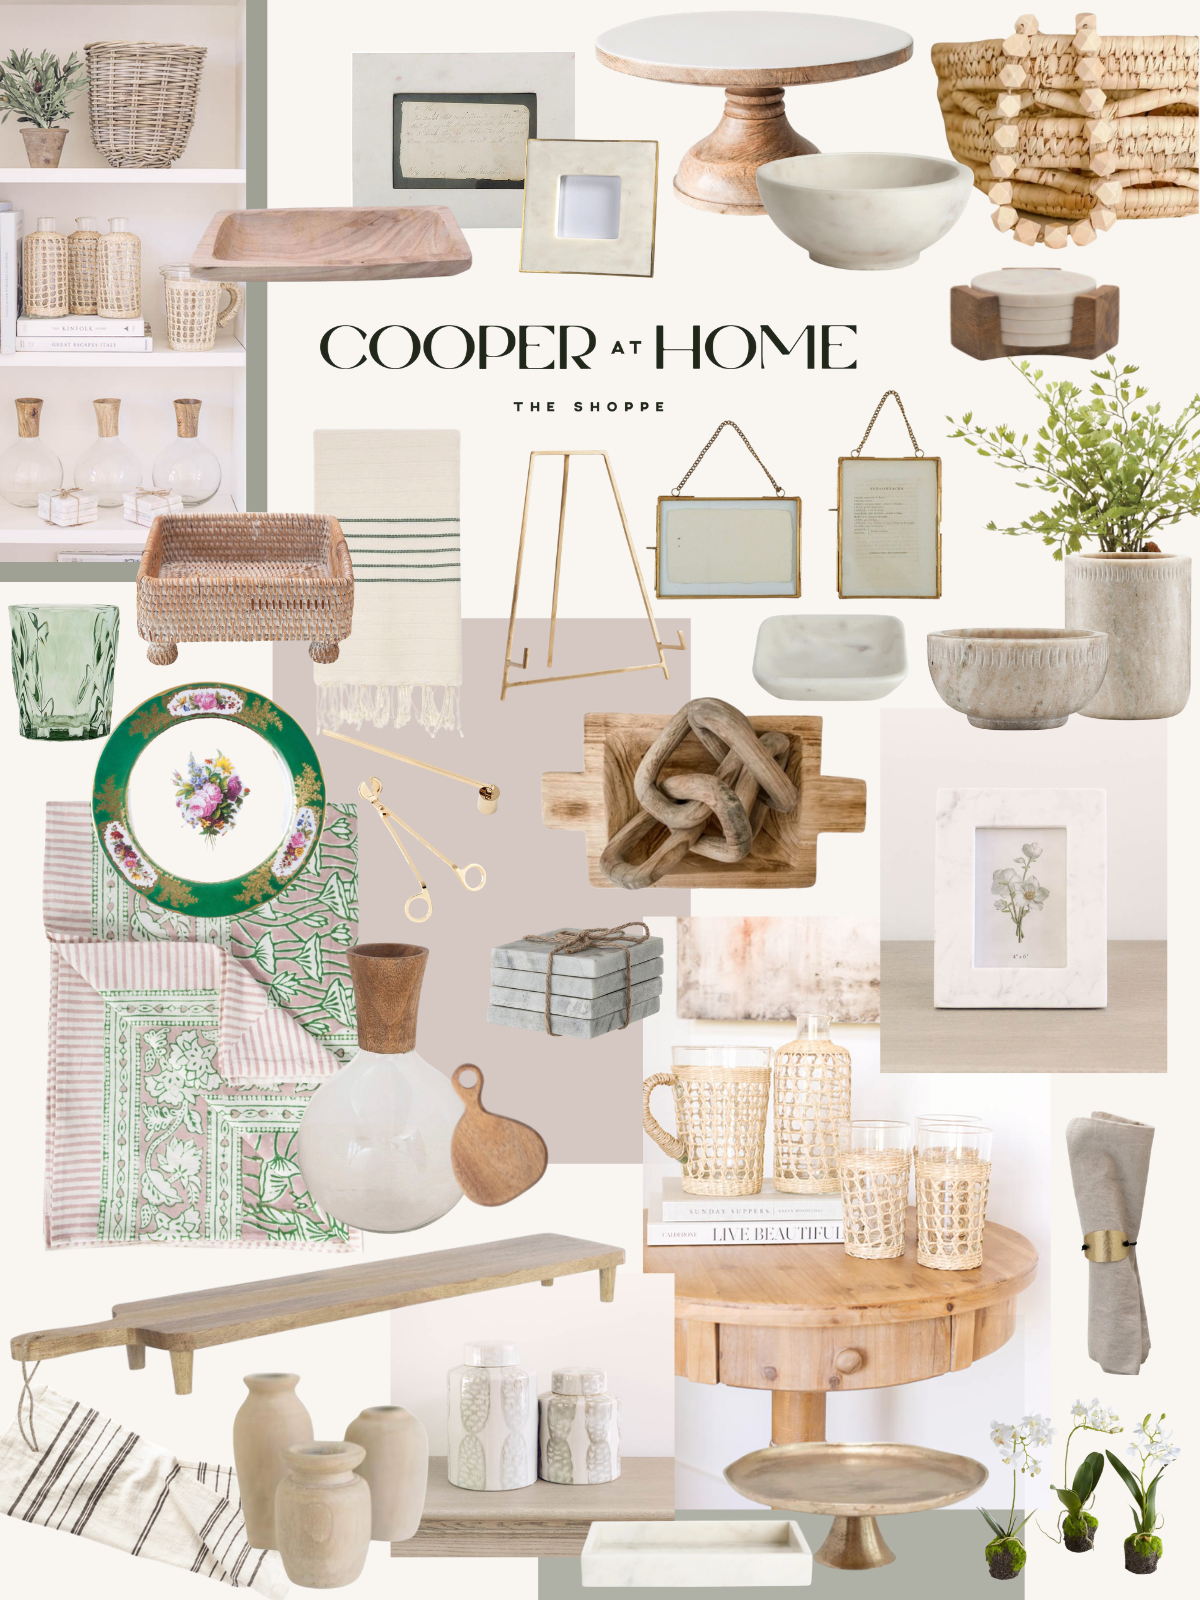 Shoppe Cooper at Home May 2021 Collection of refined rustic home decor.